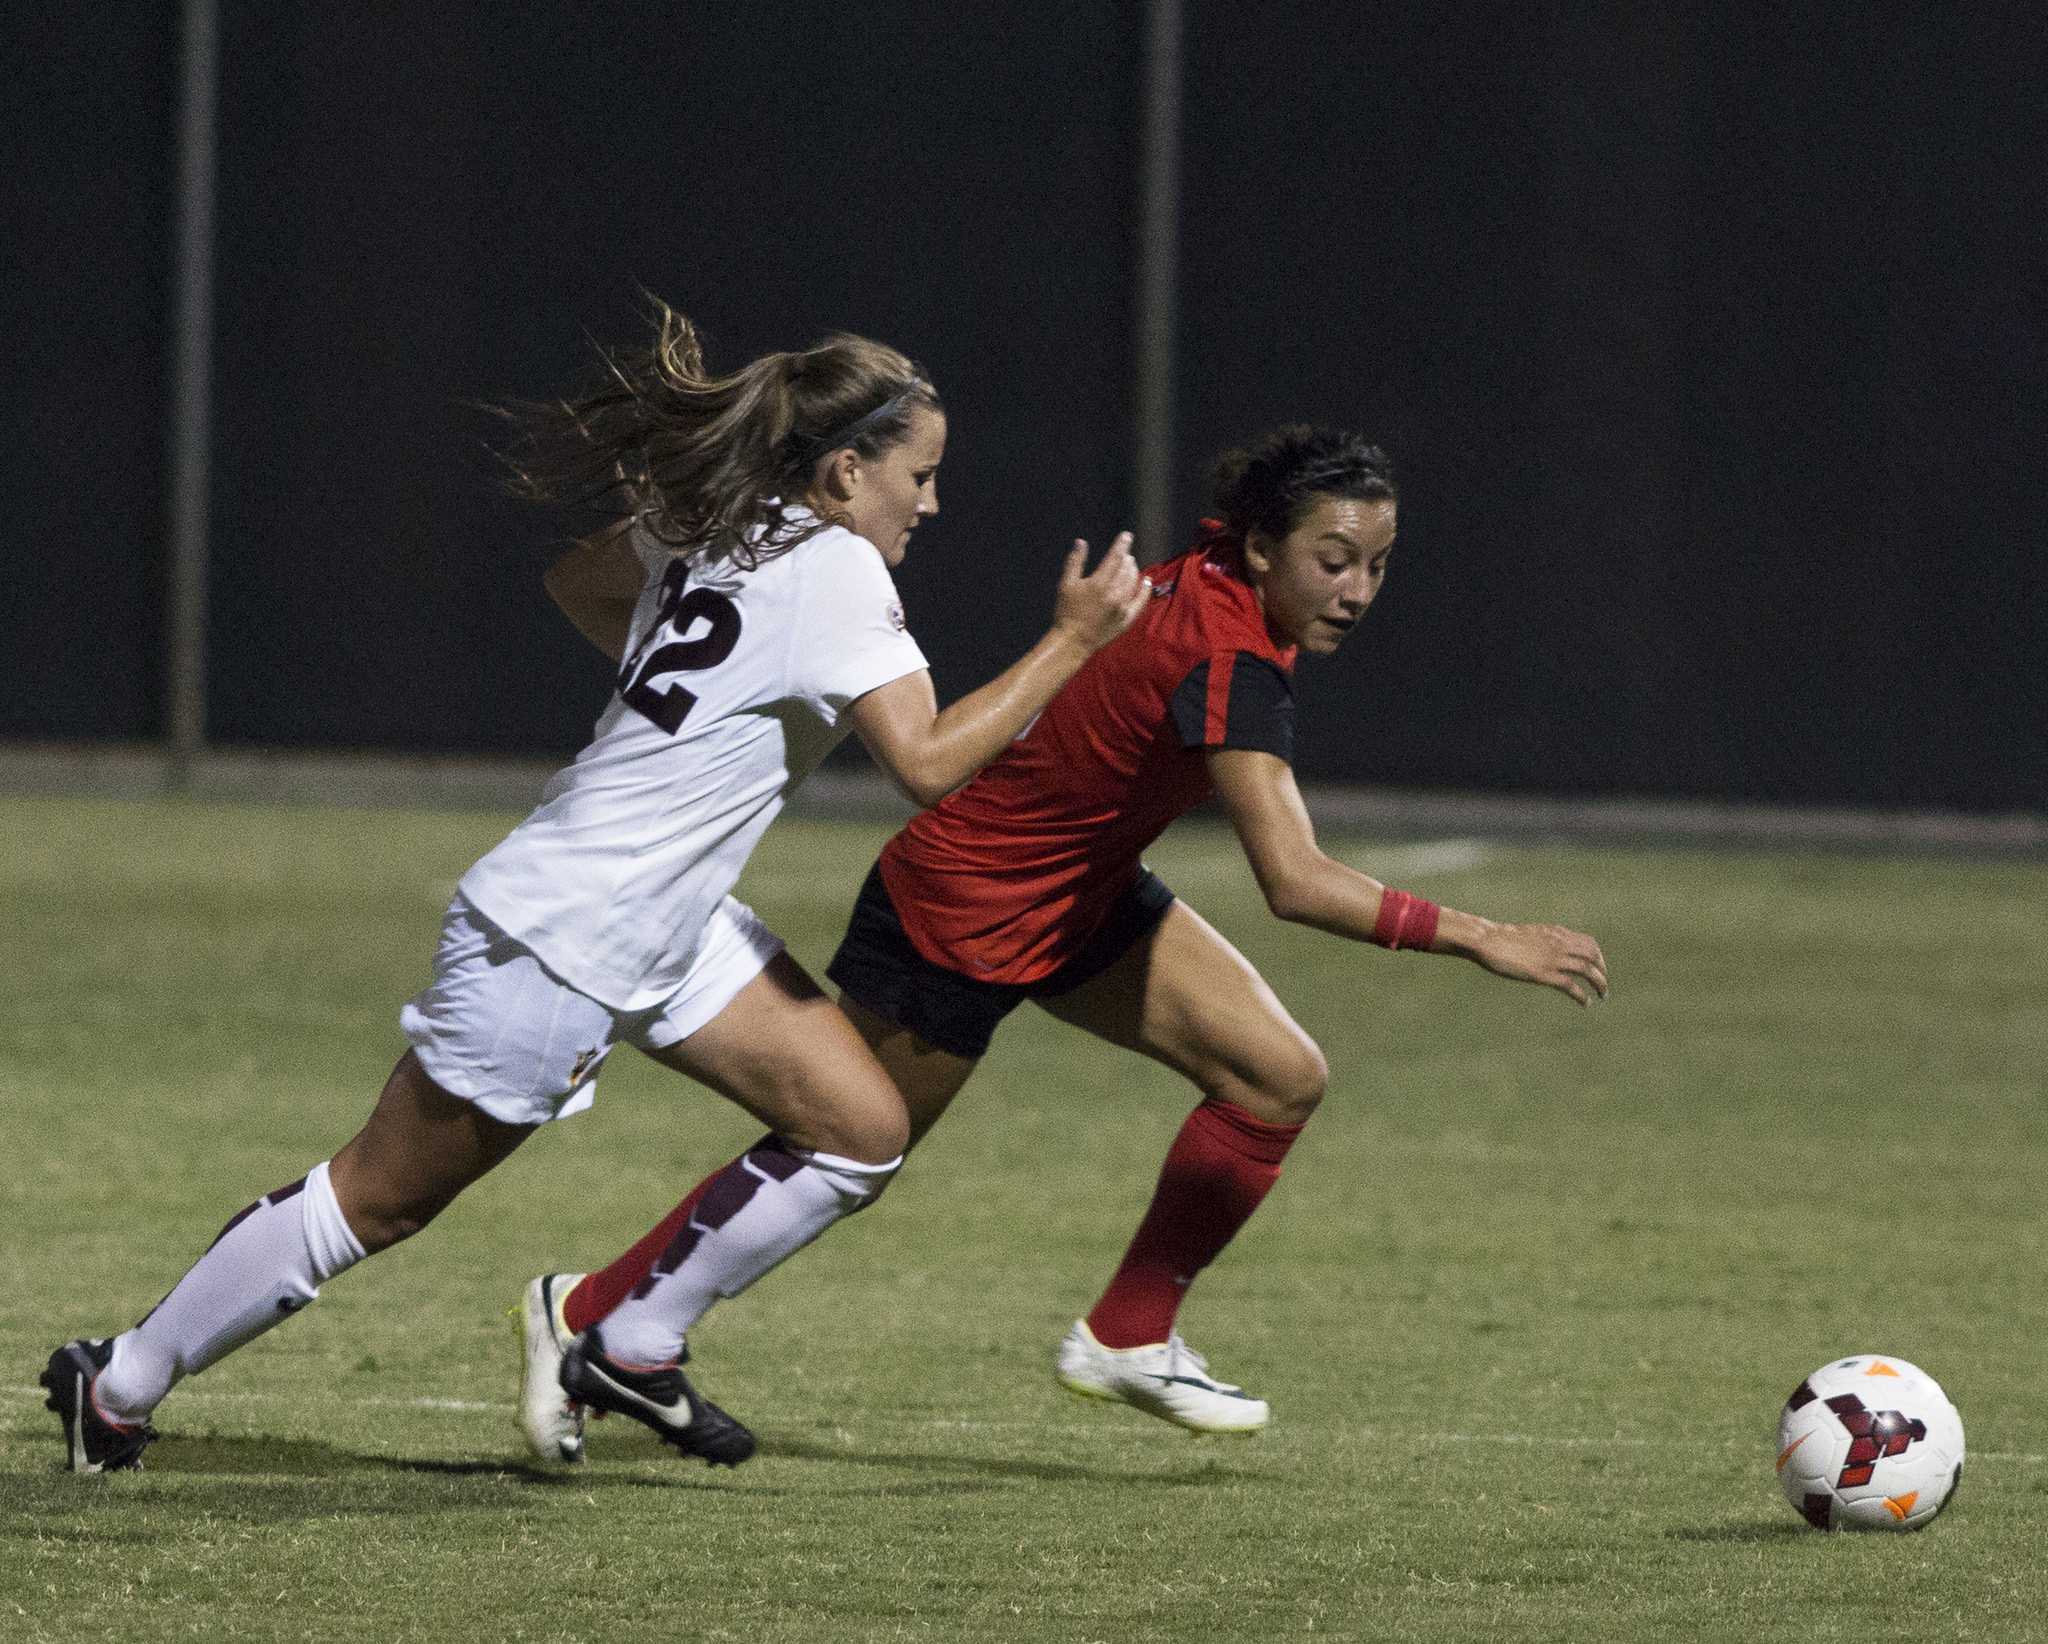 CSUN sophomore forward Cynthia Sanchez has blitzed through defenses this season on her way to six goals and the Big West Offensive Player of the Week. Photo credit: File Photo/The Sundial